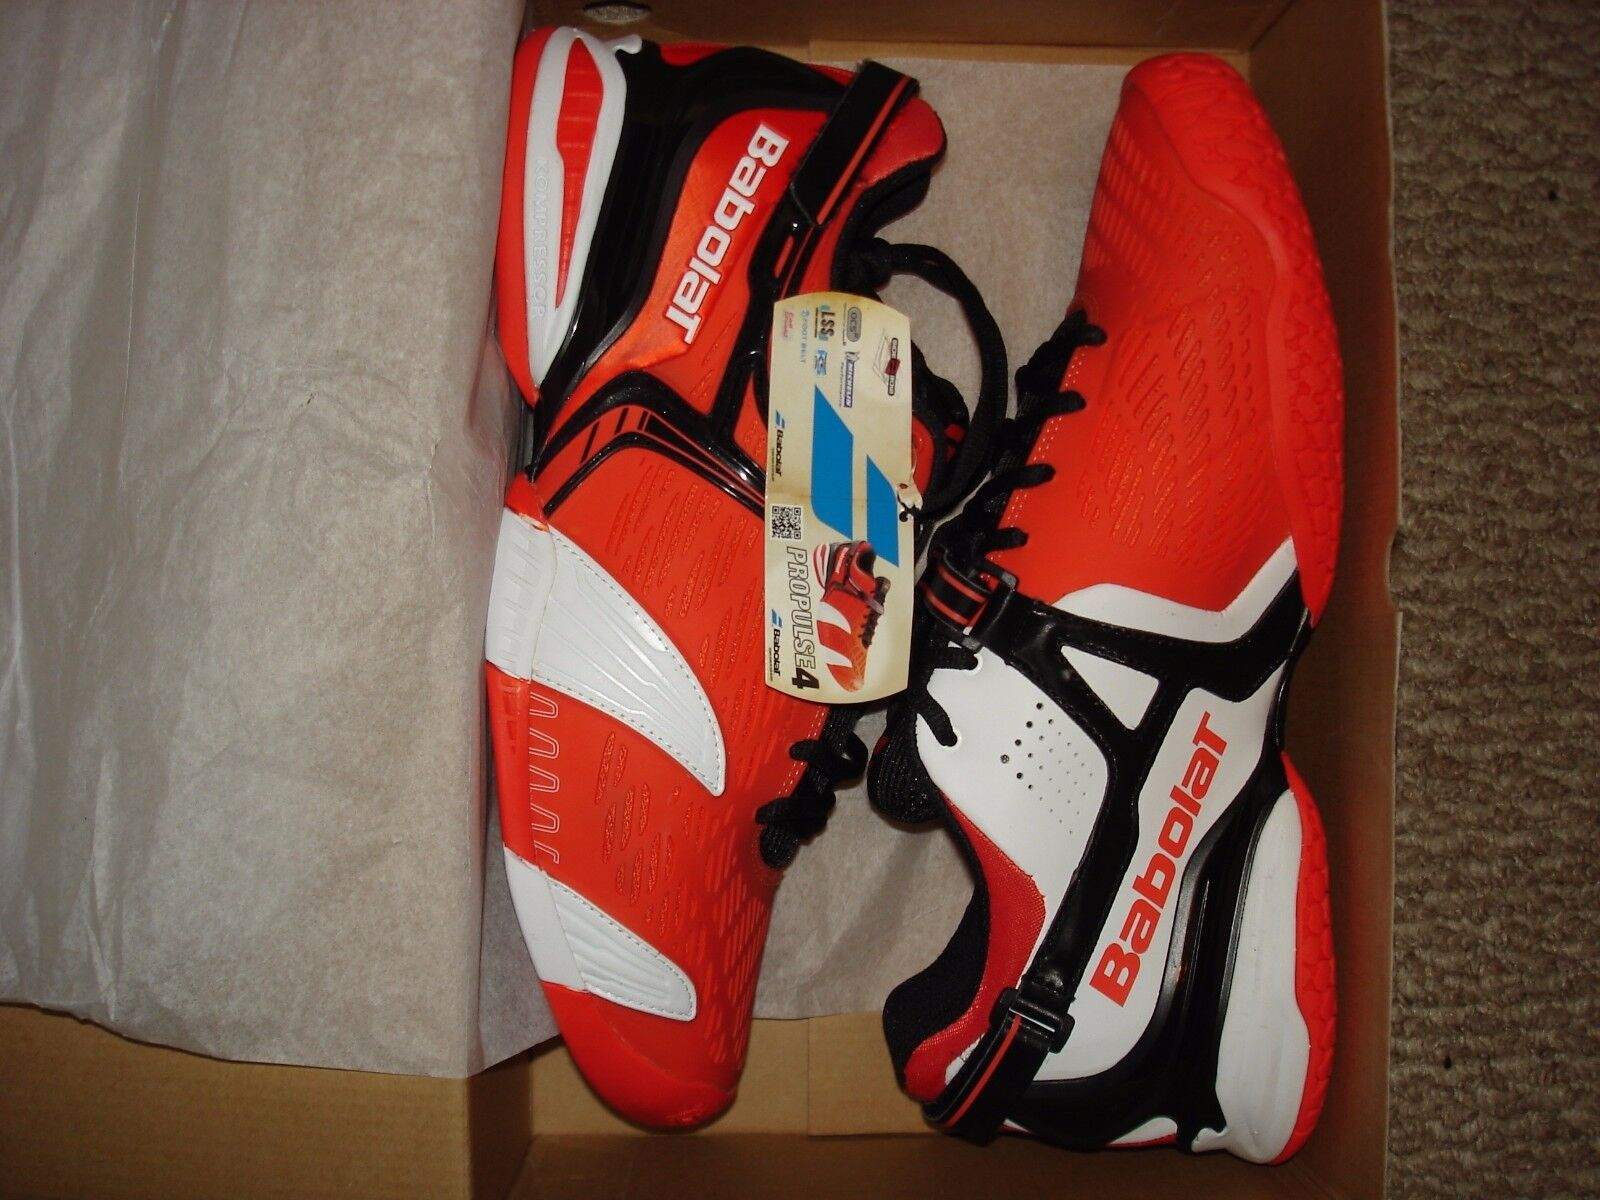 New in Box Babolat Propulse 4 ALL Court Homme chaussures de tennis 30S1372 Taille 12.5